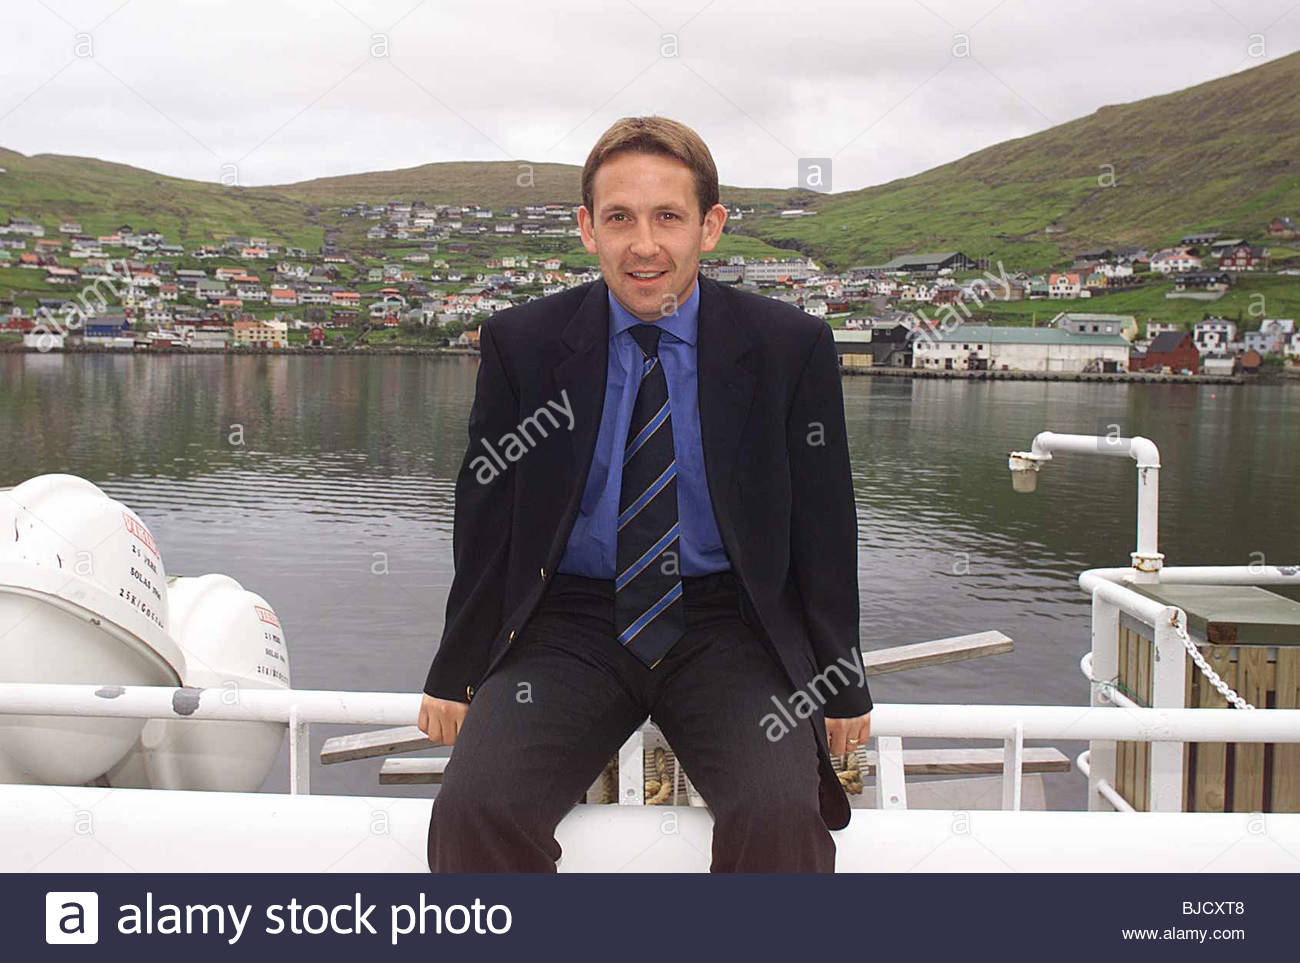 TORSHAVN - FAROE ISLANDS Scotland striker Billy Dodds looks ahead to his side's European Championship Qualifier - Stock Image